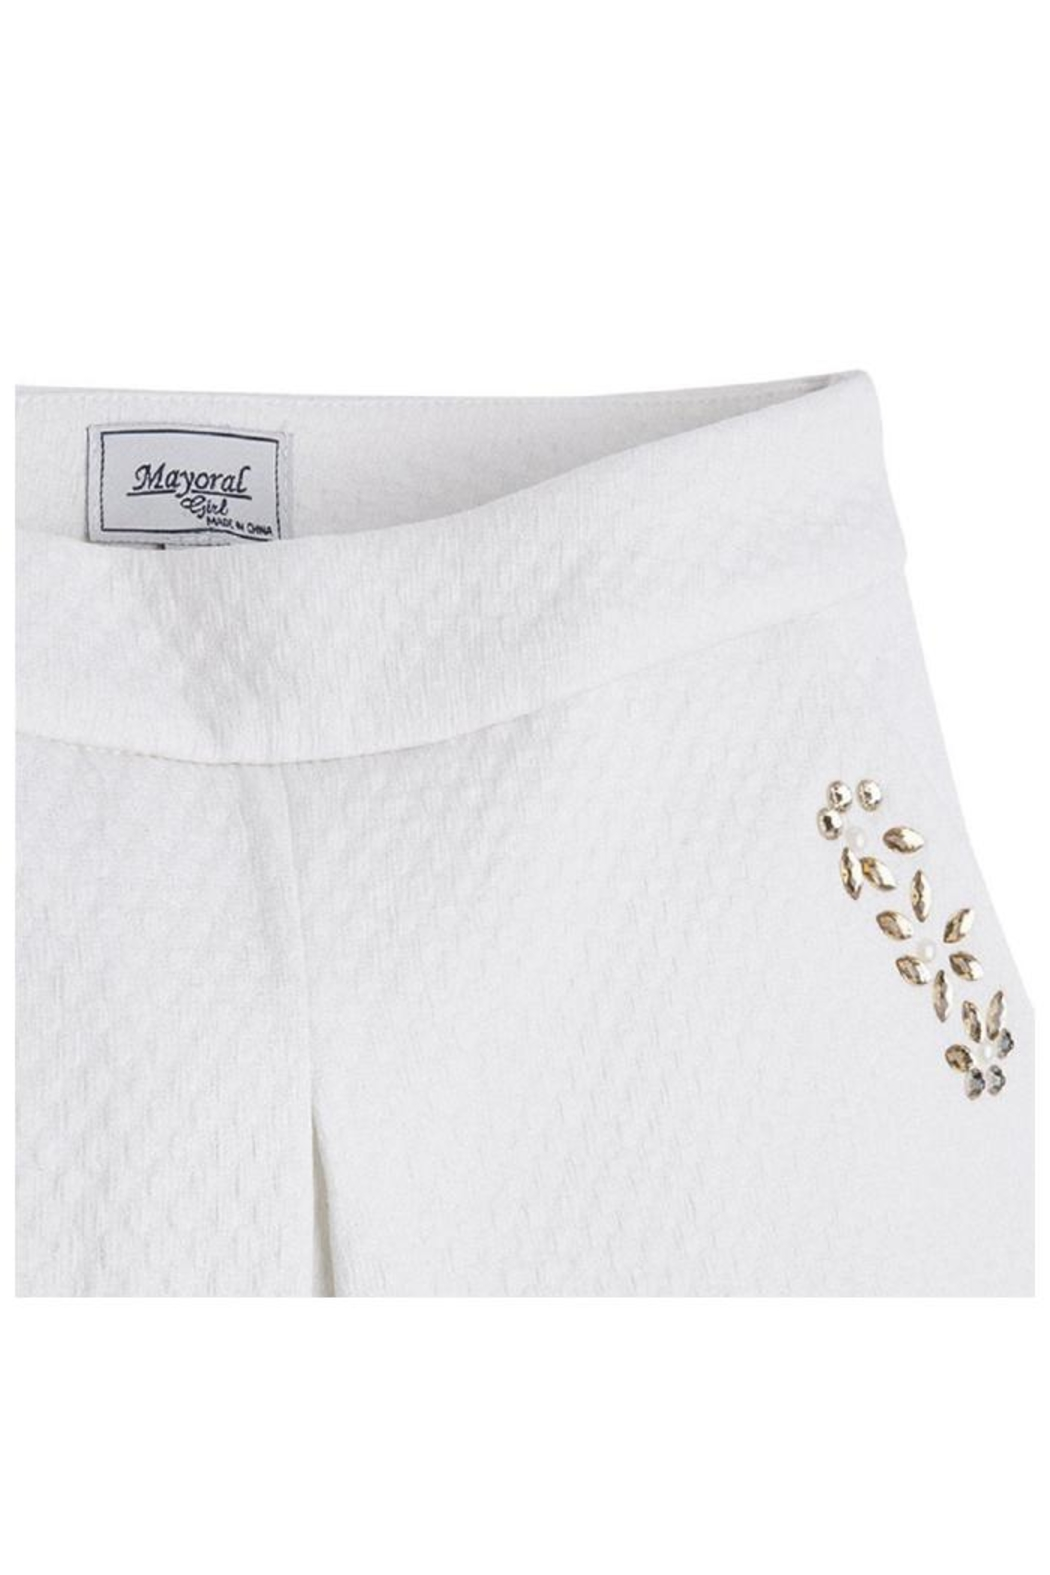 Mayoral Metallic Jeweled Skort - Side Cropped Image